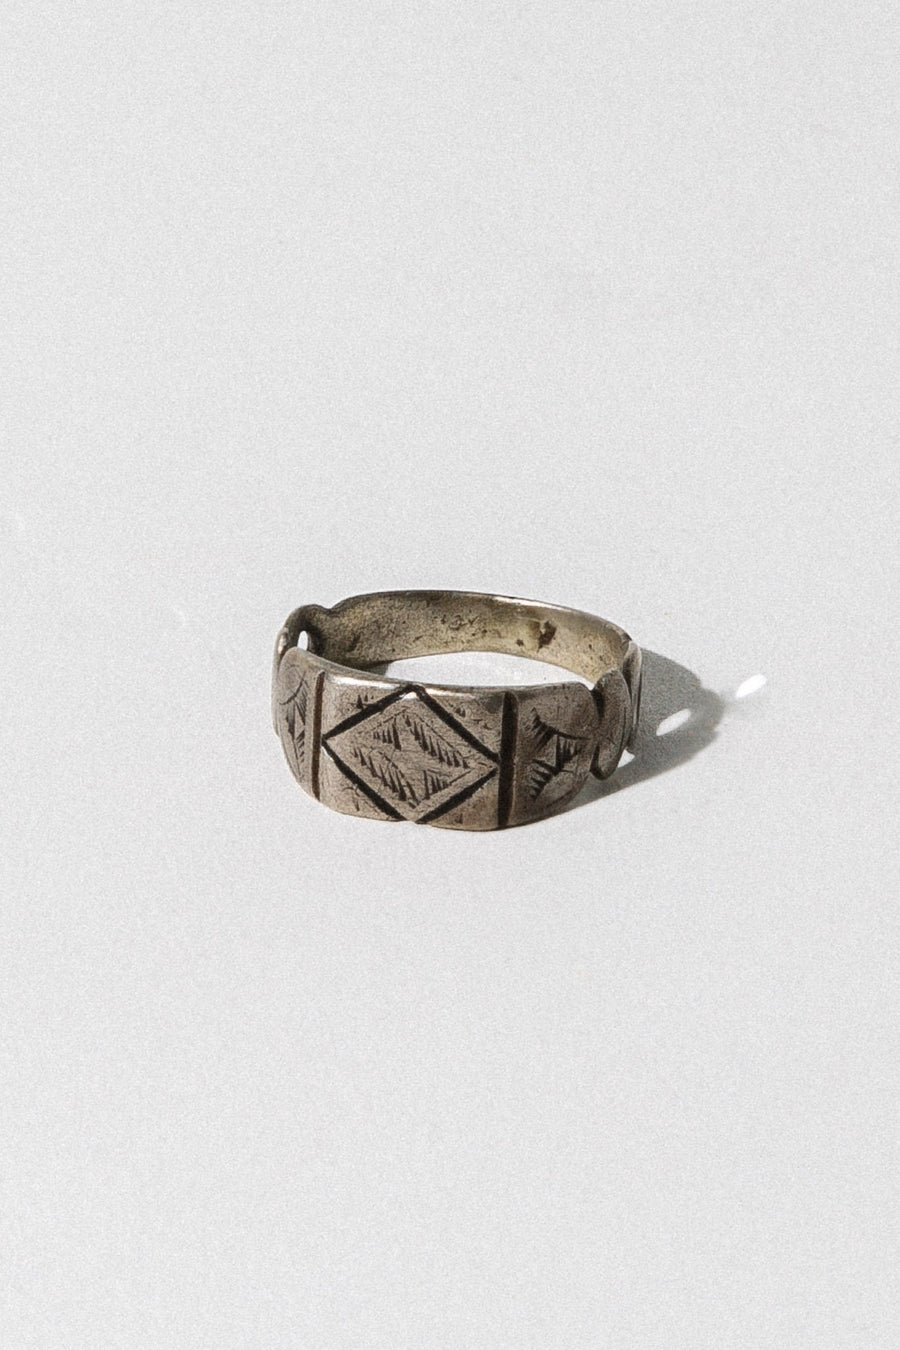 Ethnic Embellishments Jewelry Silver / US 10 Copy of Copy of Copy of Moroccan Ring